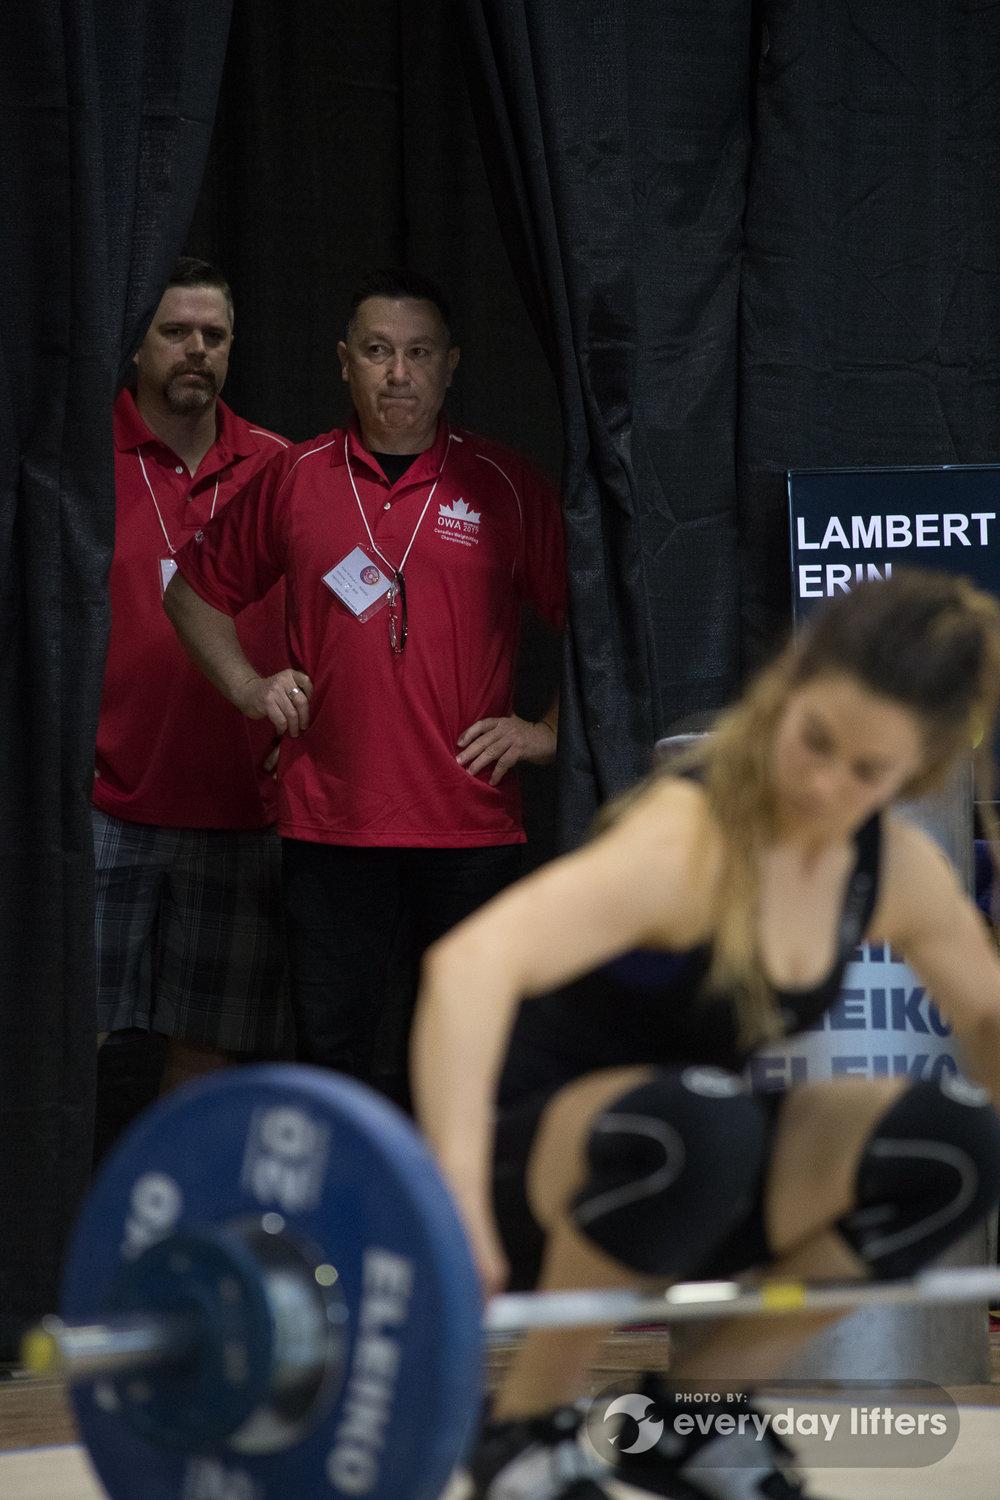 canadian-weightlifters-women-halterofilia-olympic-weightlifting-photos-11.jpg